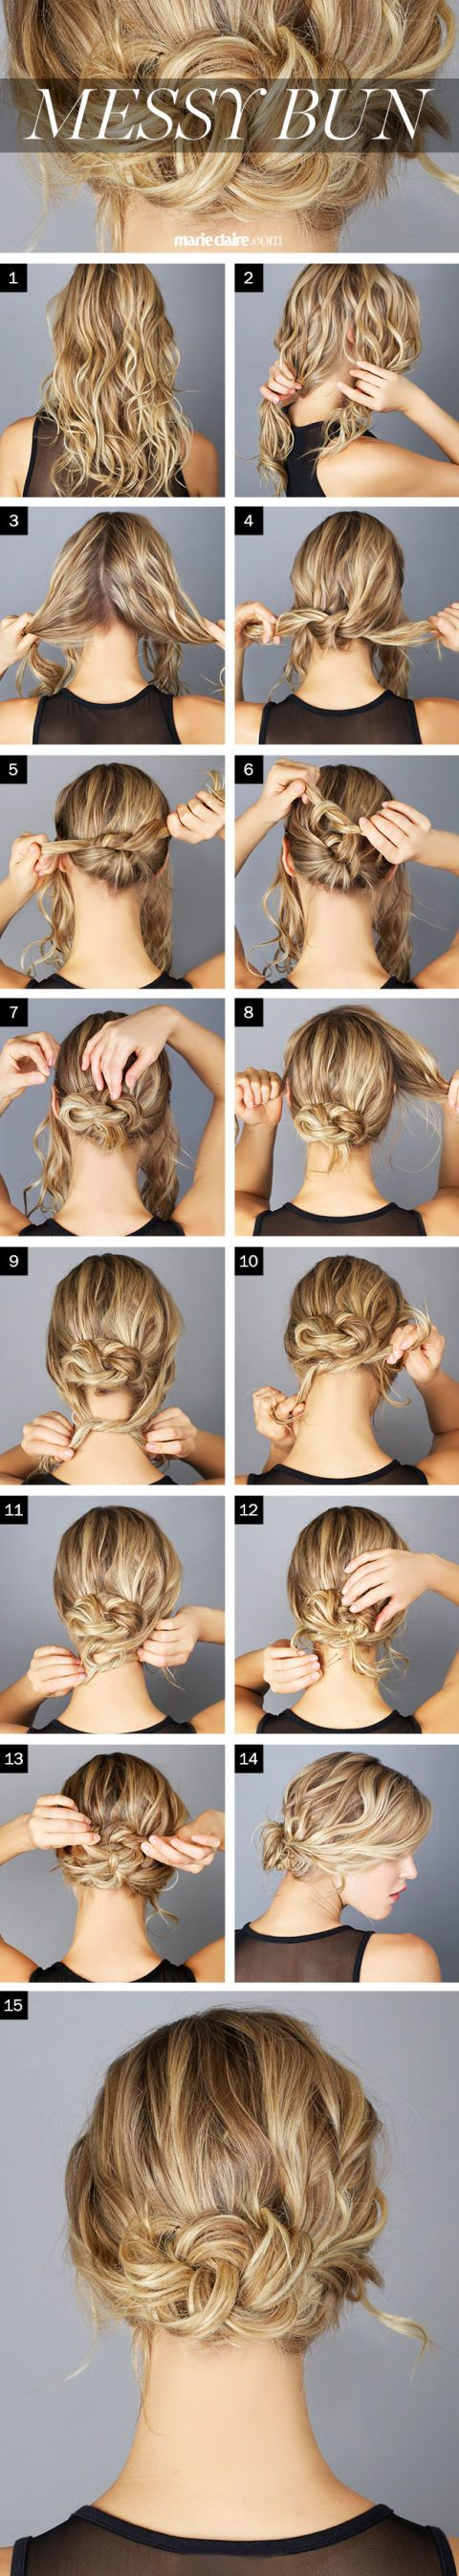 Hair How-To: The Messy Bun I see this requires bobby pins. We'll see how that turns out.